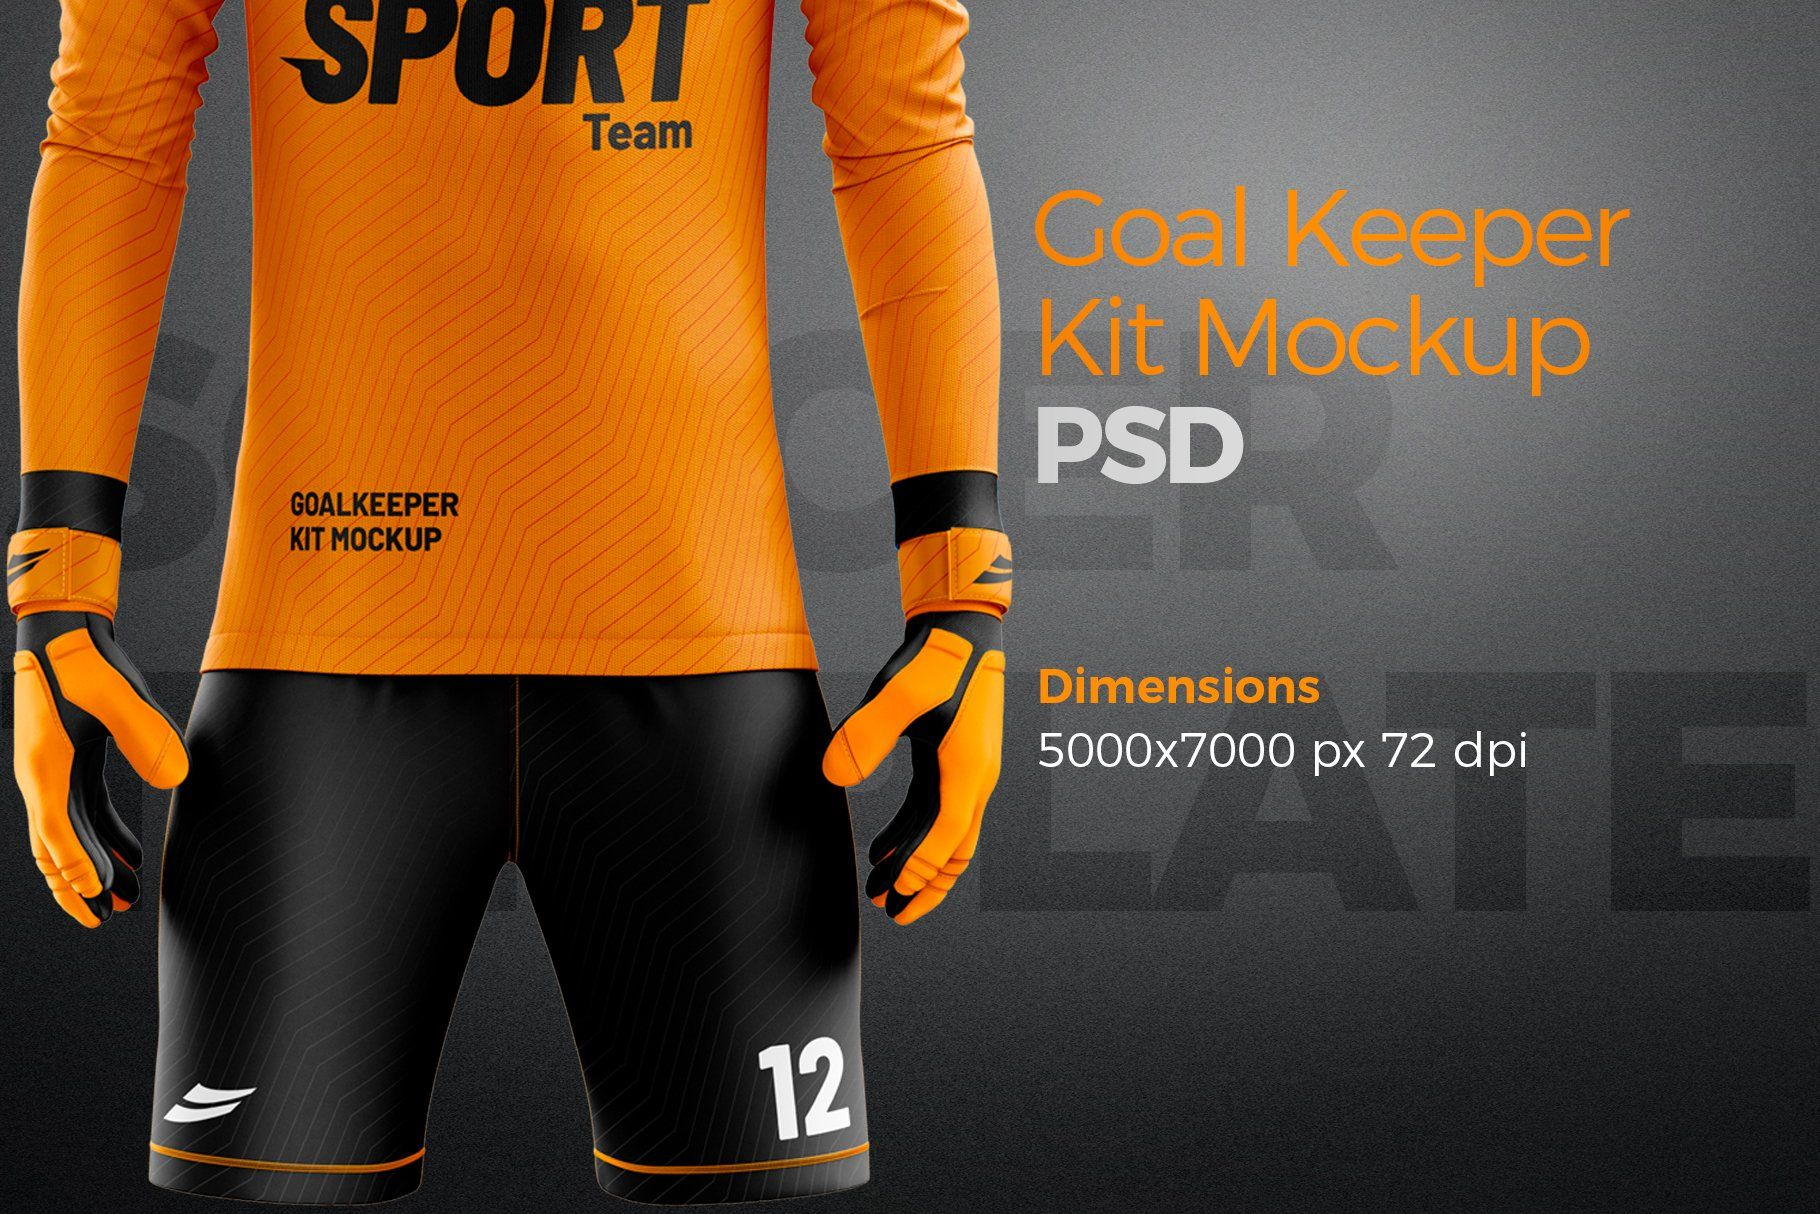 Download Goalkeeper Kit Mockup Psd Template Ad Spon Front Template Display Efficient Goalkeeper Kits Mockup Psd Goalkeeper